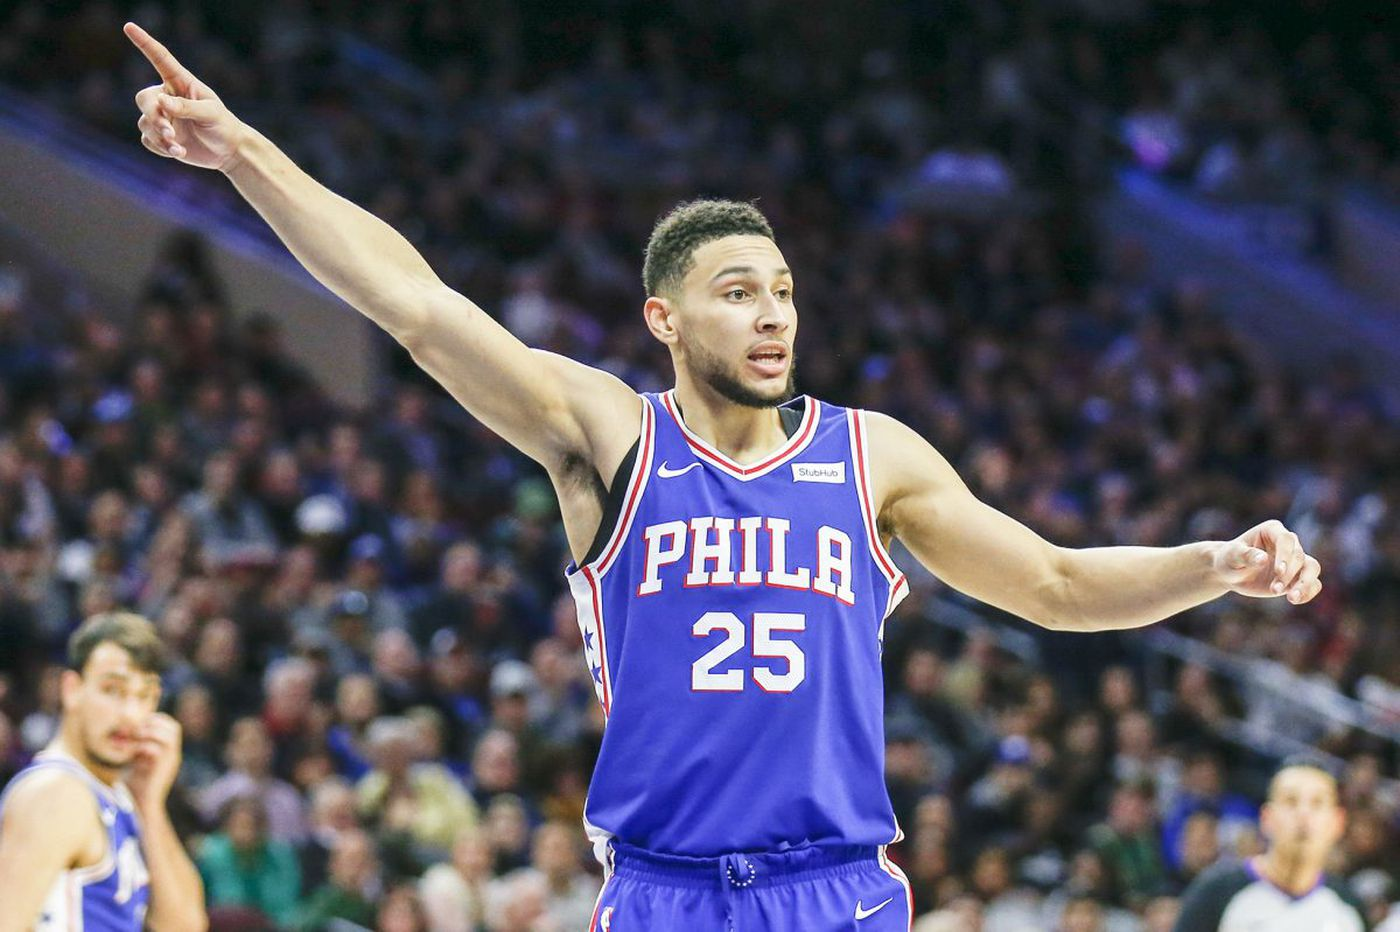 Sixers rookie Ben Simmons sidelined with elbow swelling